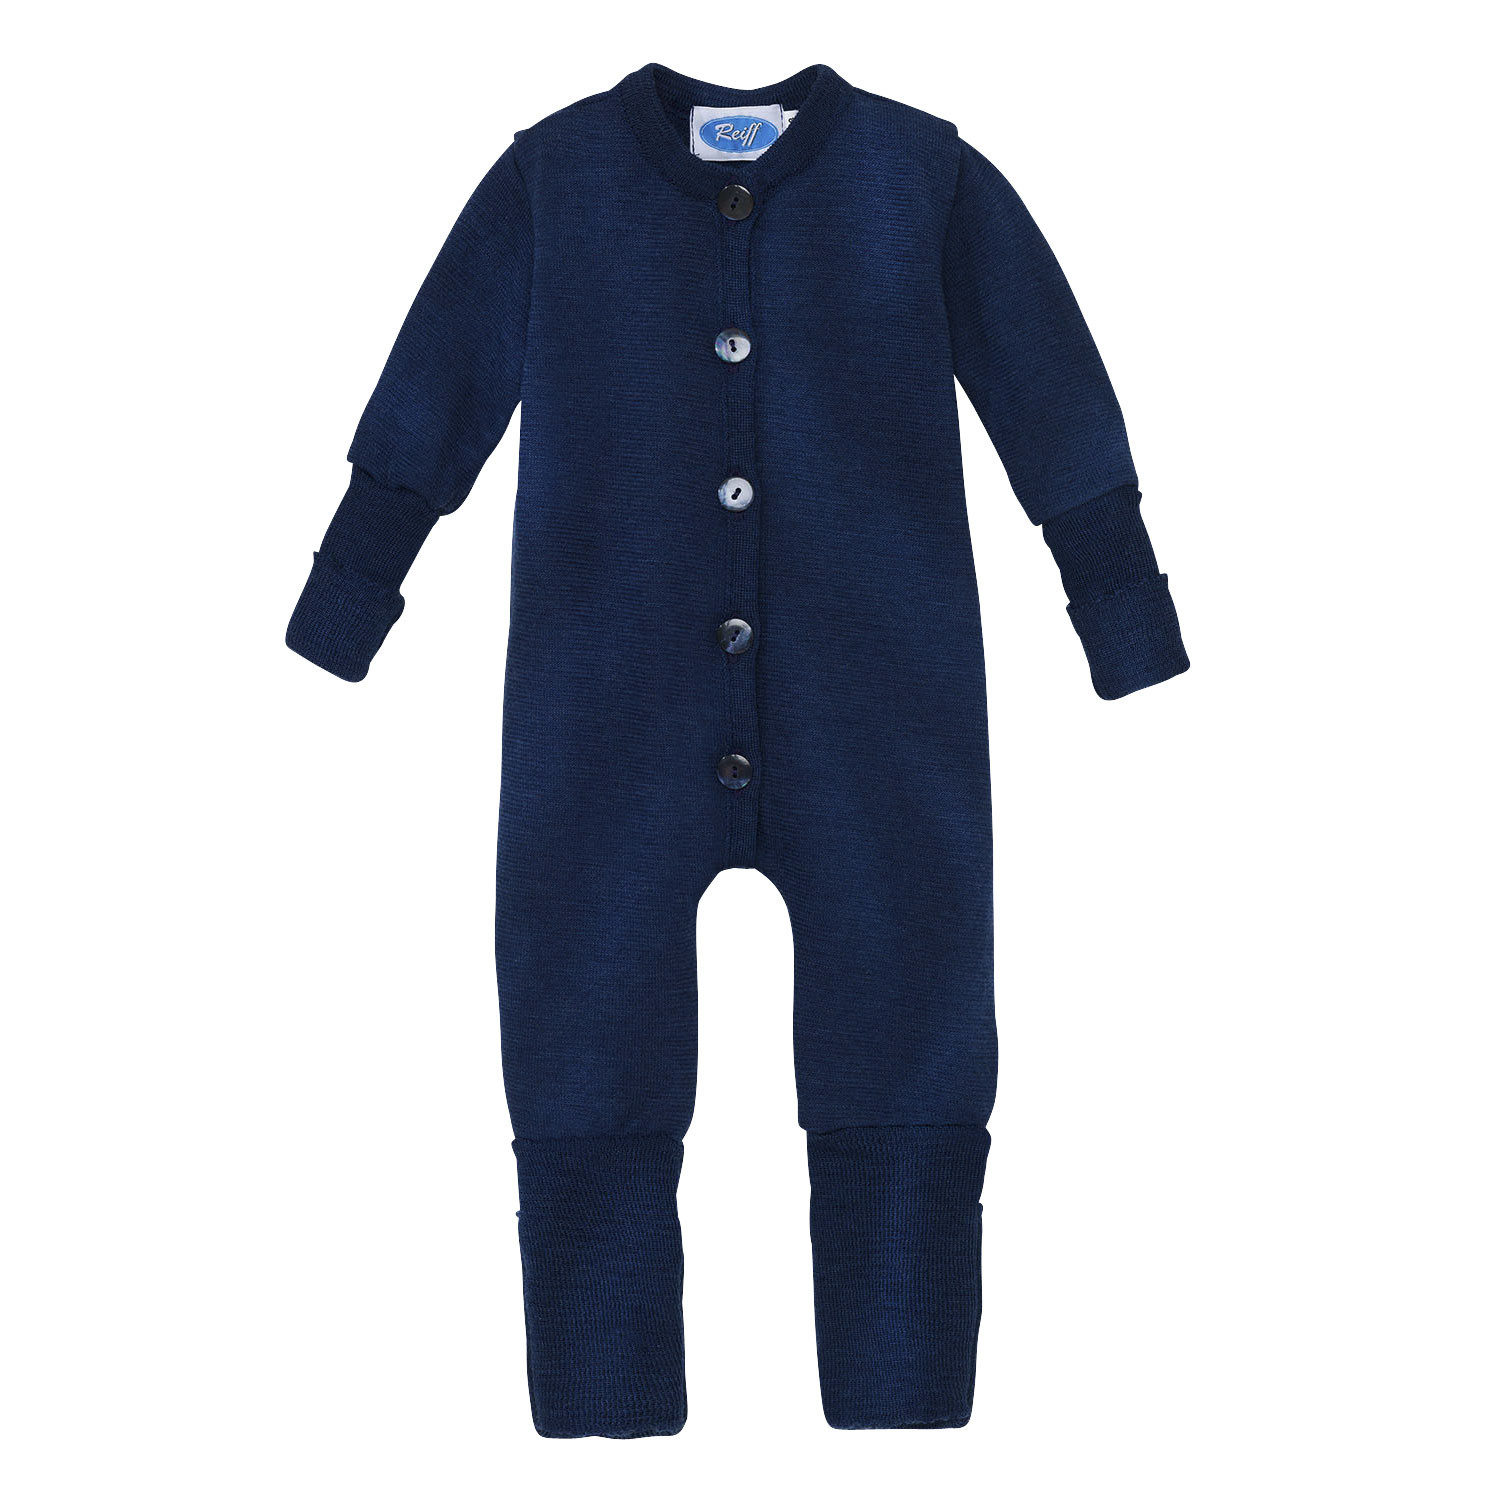 Wolle/Seide-Overall, blau